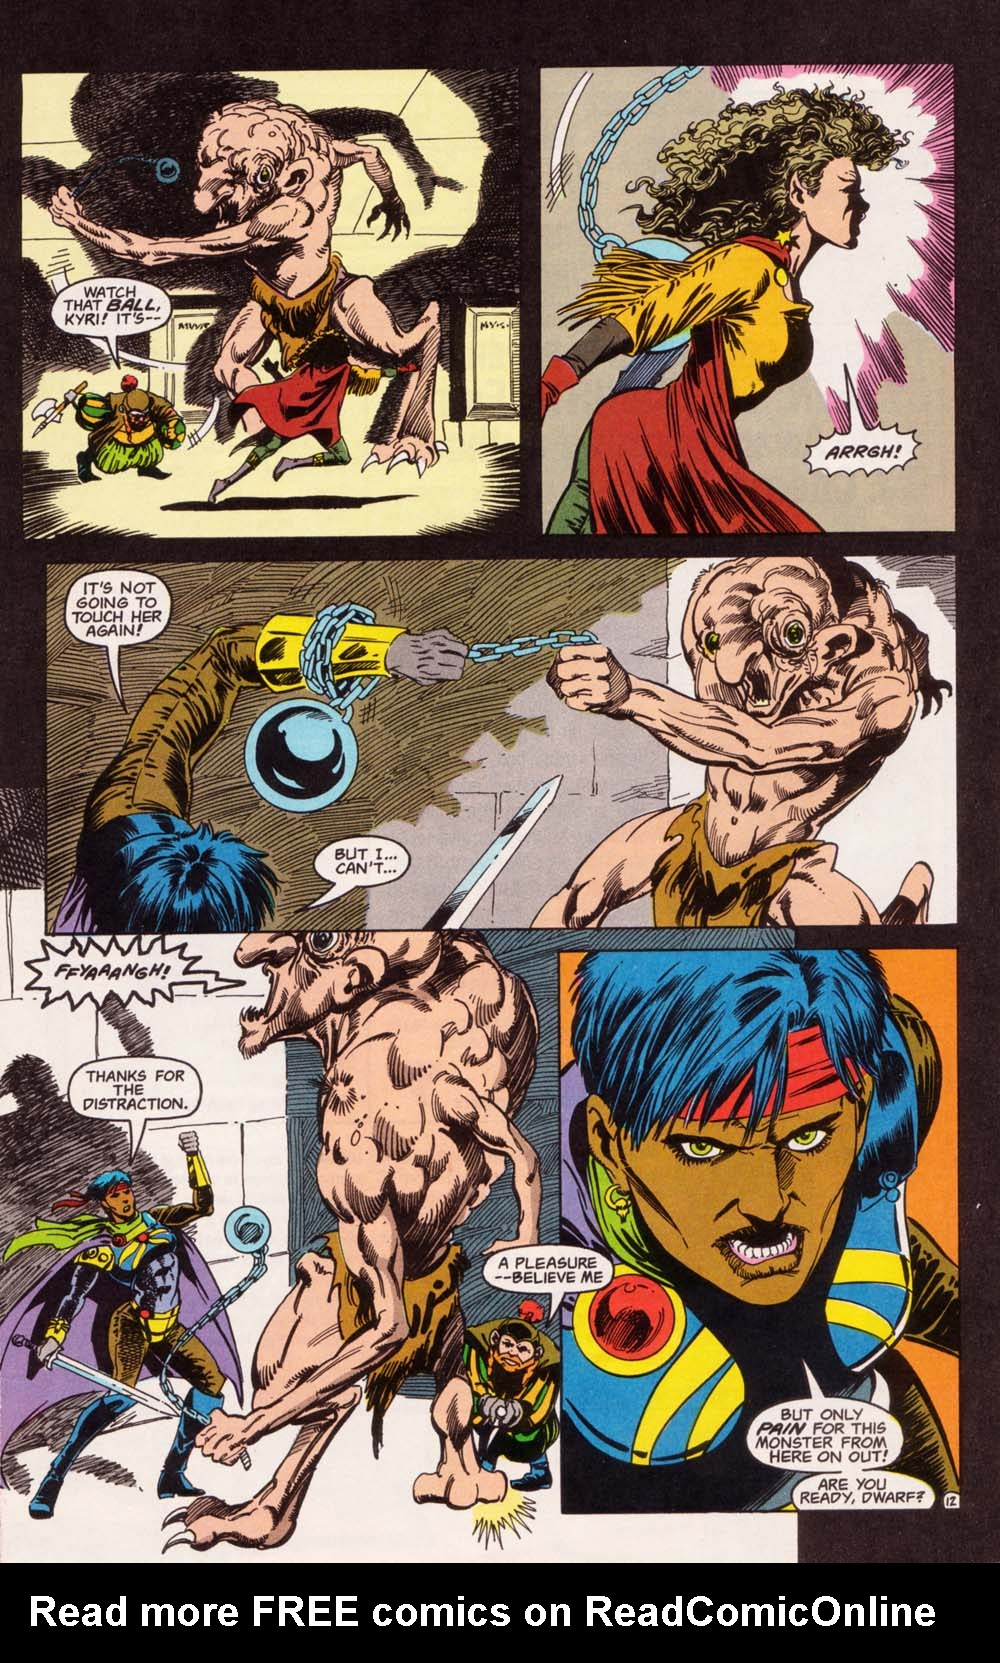 Read online Advanced Dungeons & Dragons comic -  Issue #5 - 13